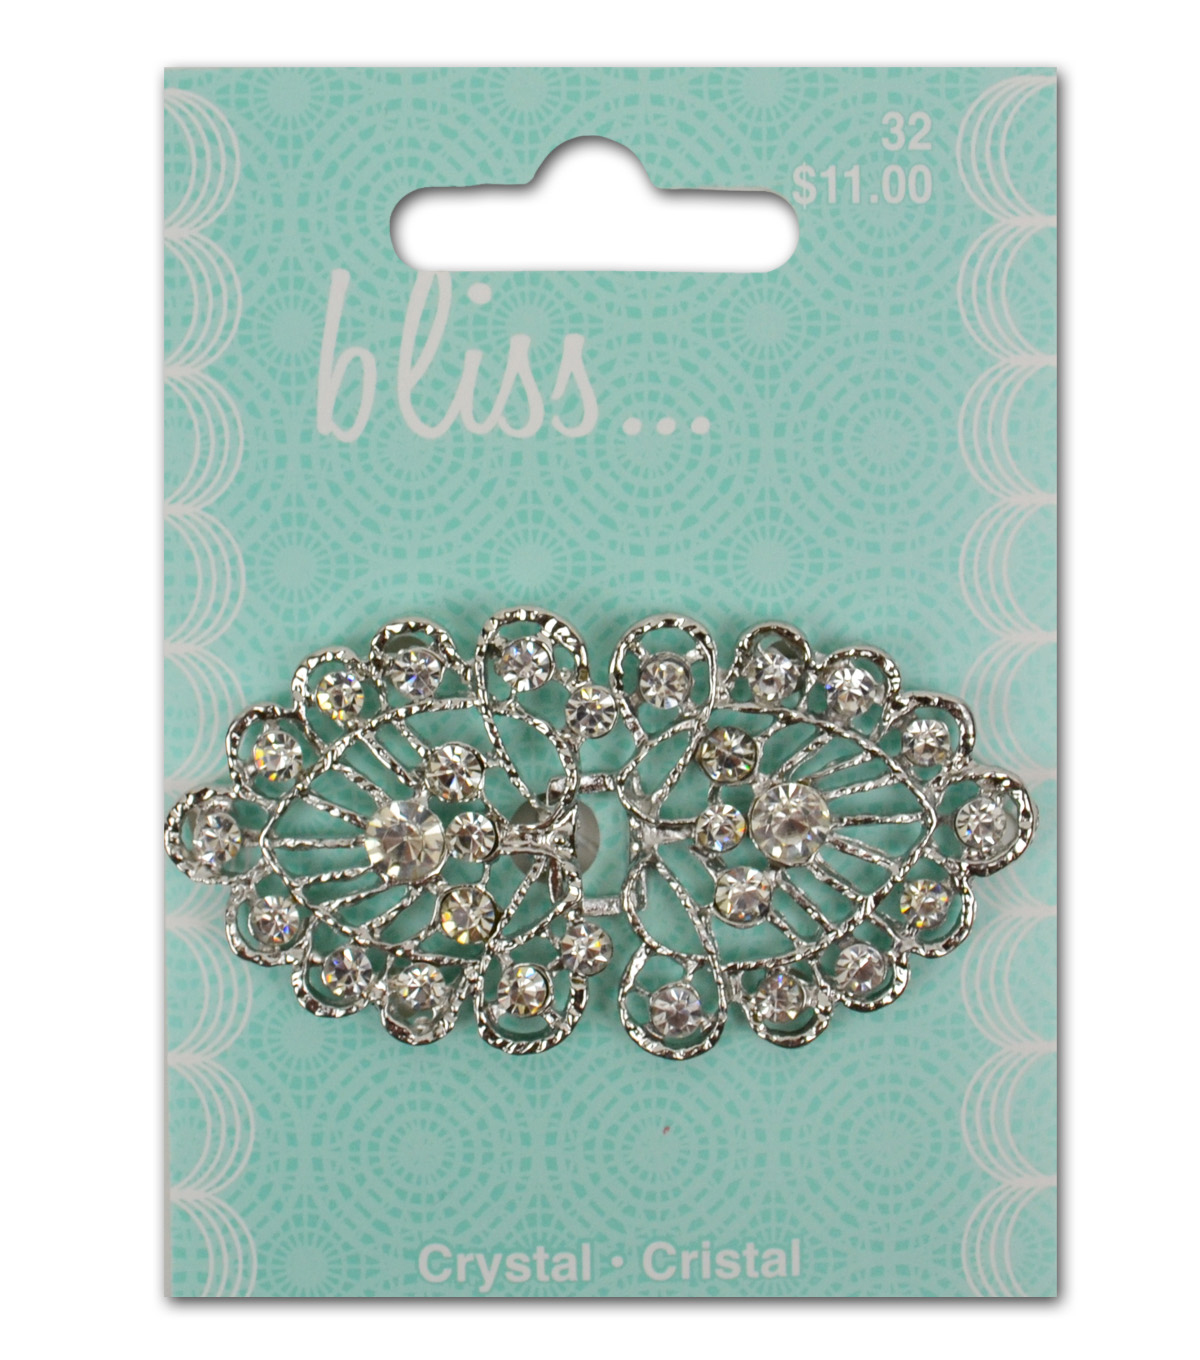 Bliss Crystal Fan Buckle